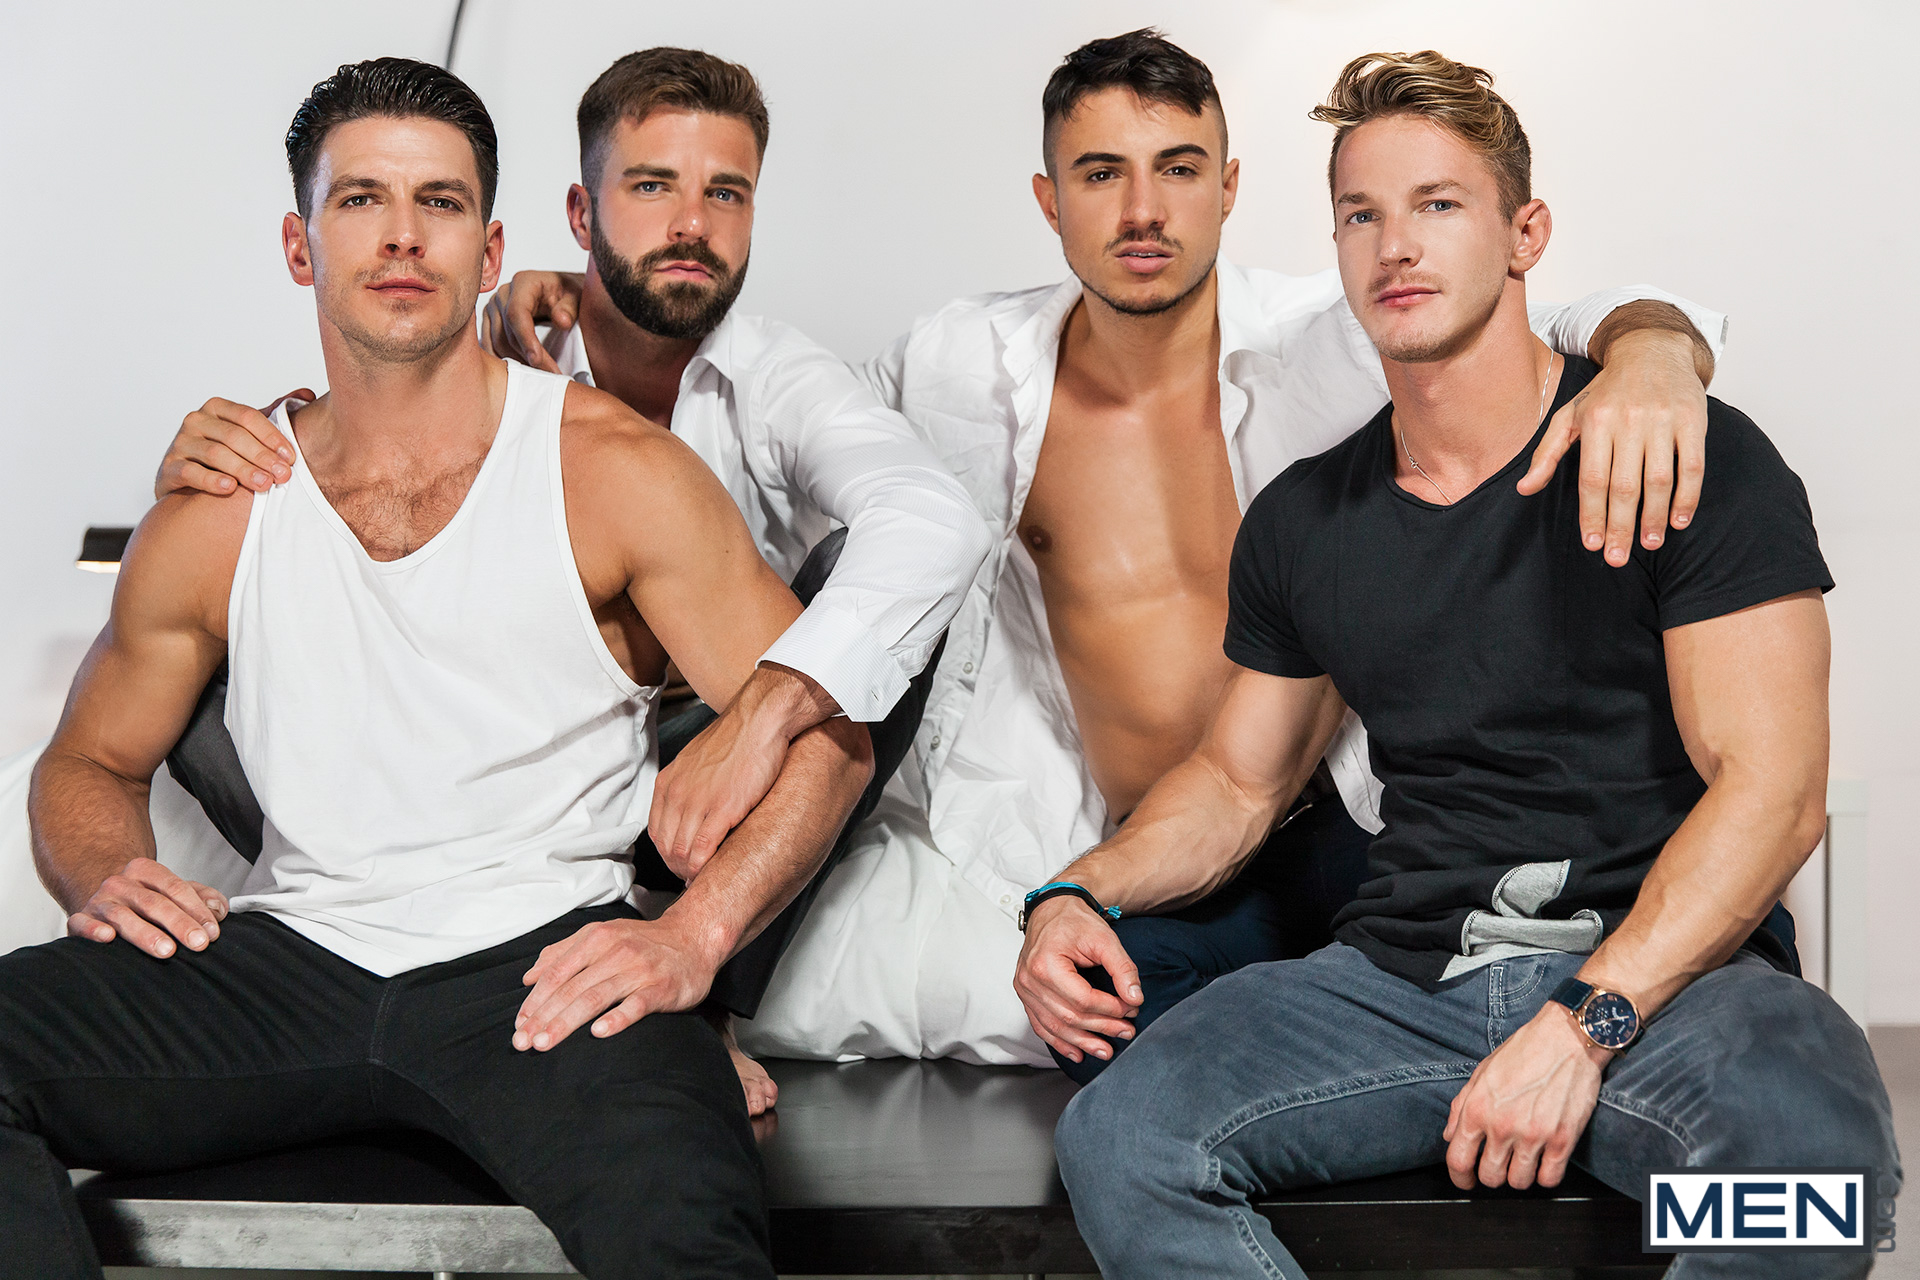 Group men orgy porn 3